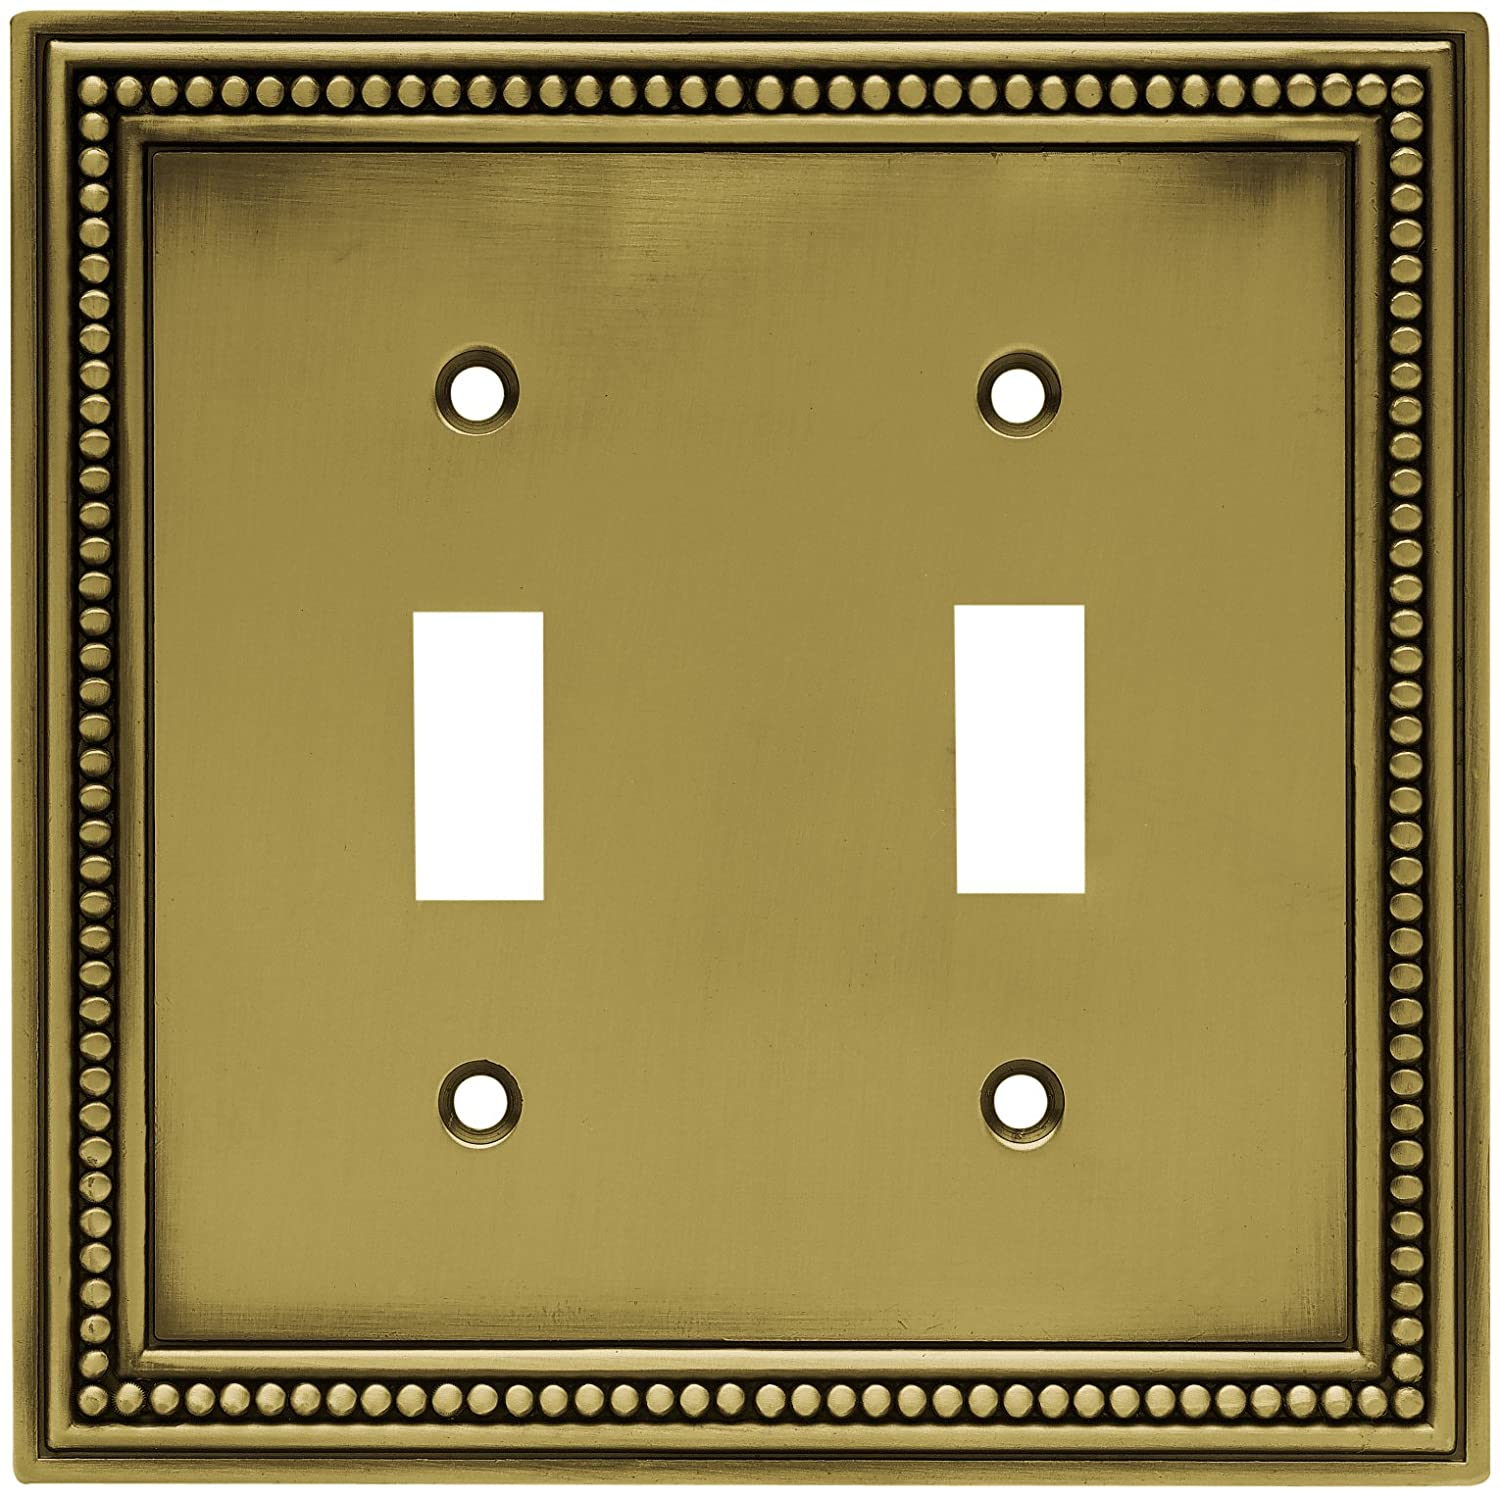 Brainerd 64772 Beaded Double Toggle Switch Wall Plate / Switch Plate ...